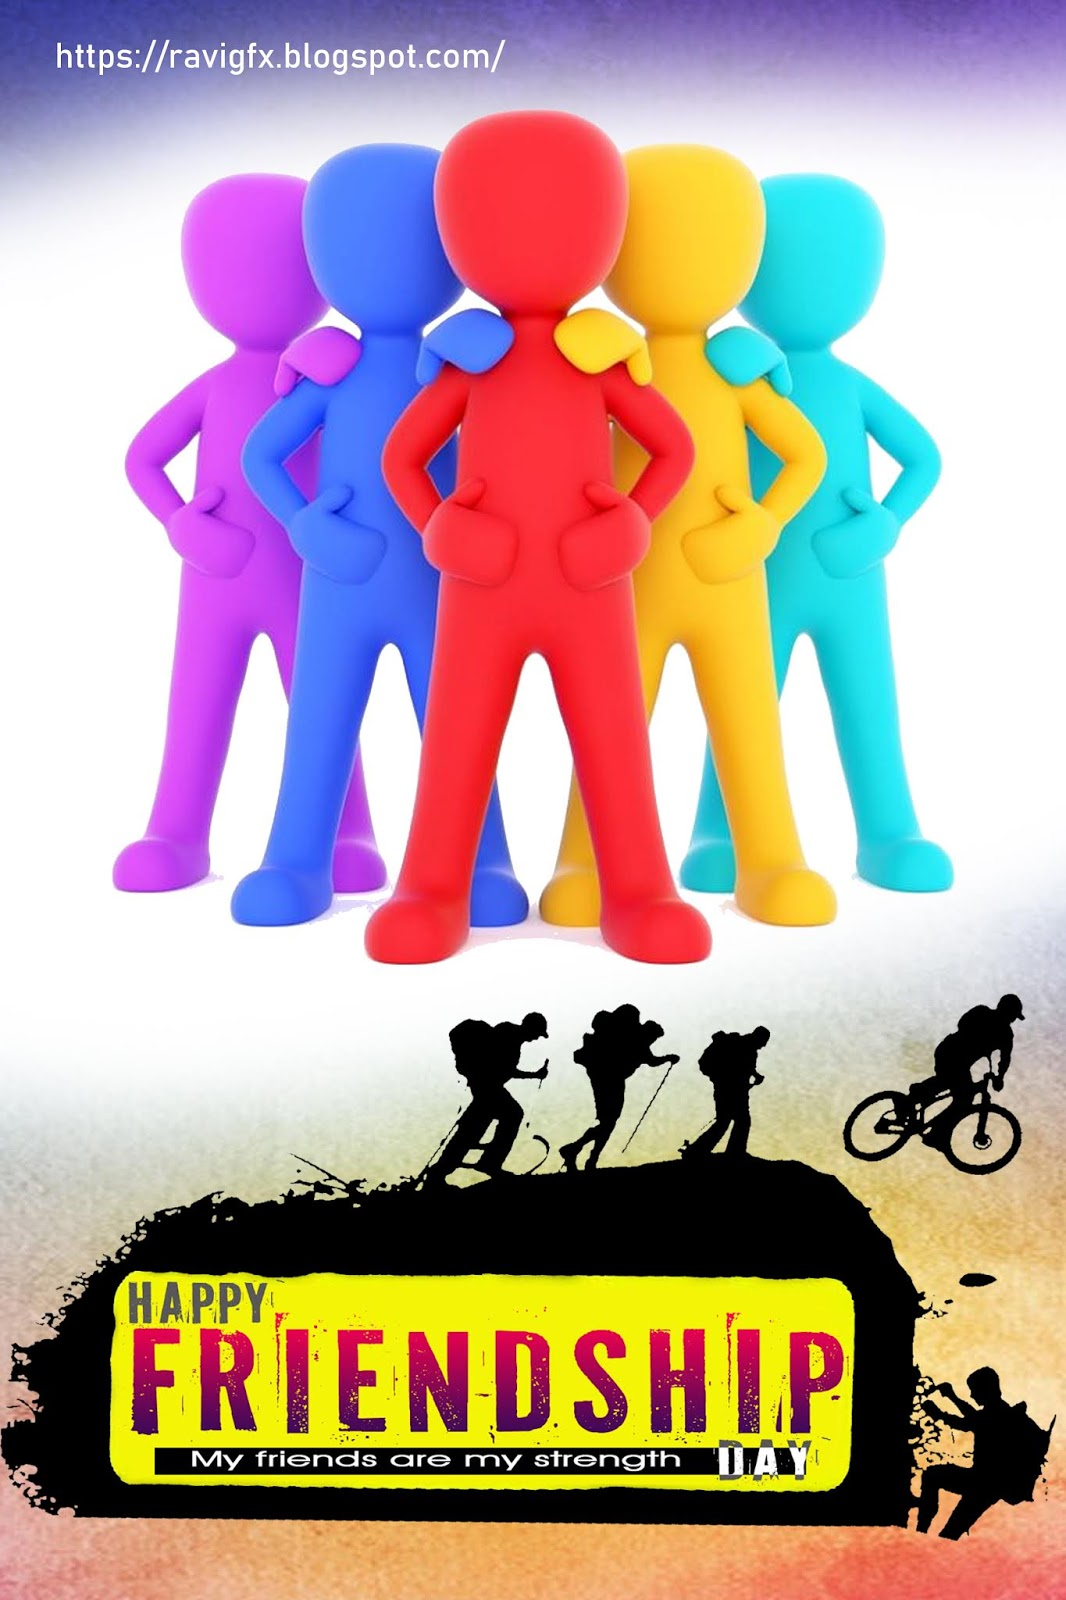 Happy Friendship Day 2019: Wishes Images, Quotes, Status ...